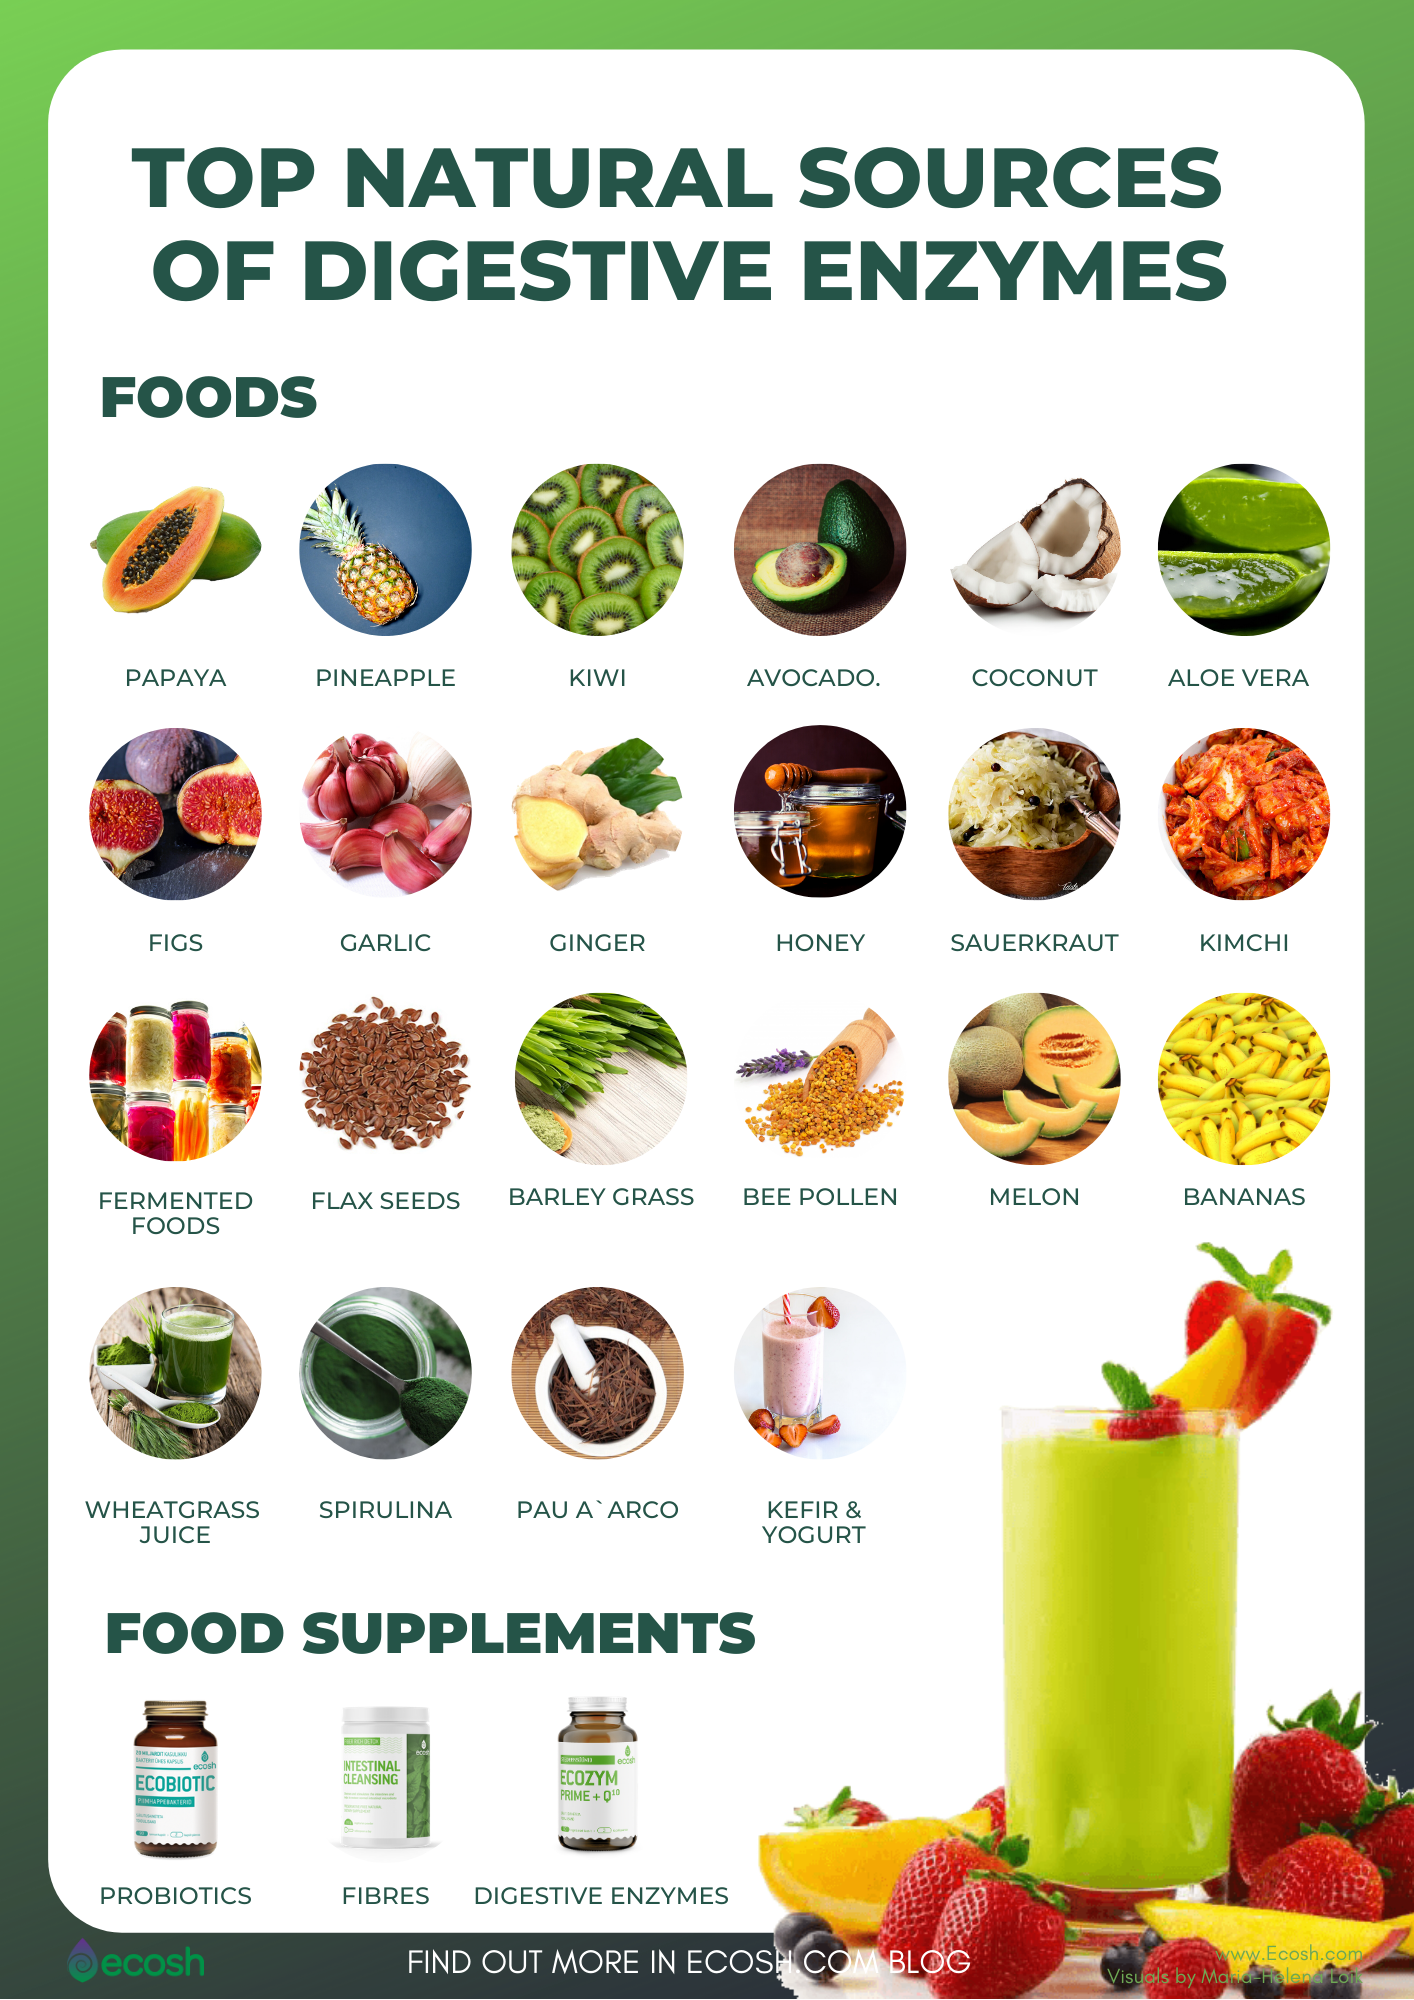 Digestive Enzymes Deficiency - Symptoms, Causes and 25 Top Natural Sources of Digestive Enzymes